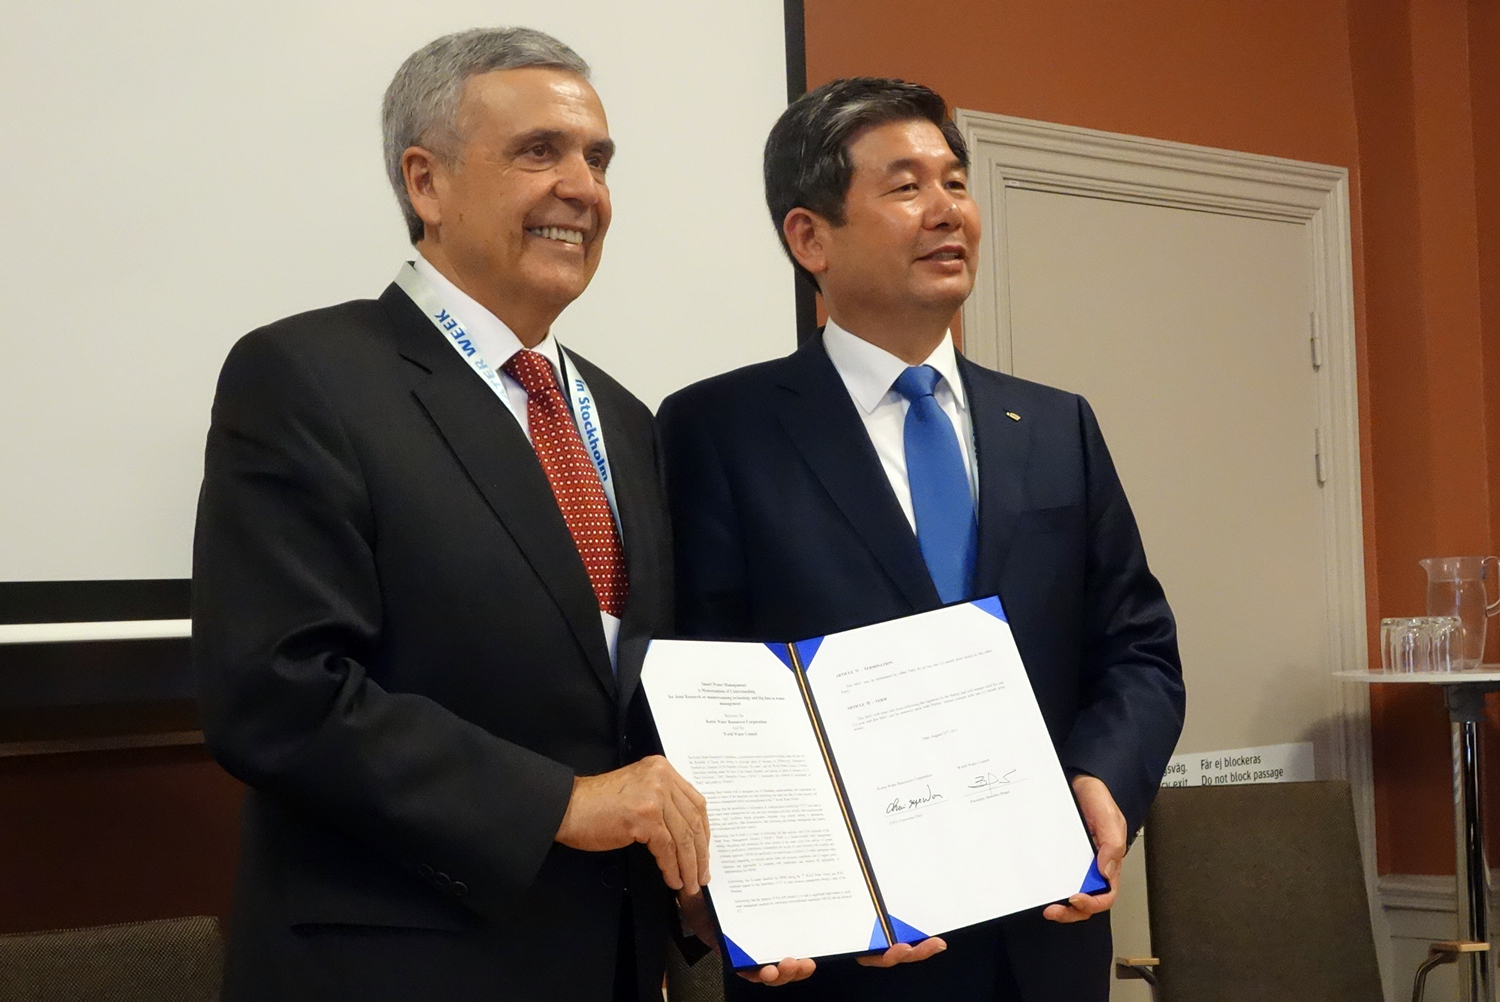 World Water Council President Benedito Braga and K-Water CEO Gyewoon Choi, Signature of the MoU on the Sustainable Water Management Initiative (SWMI), Stockholm, Sweden, 23 August 2015